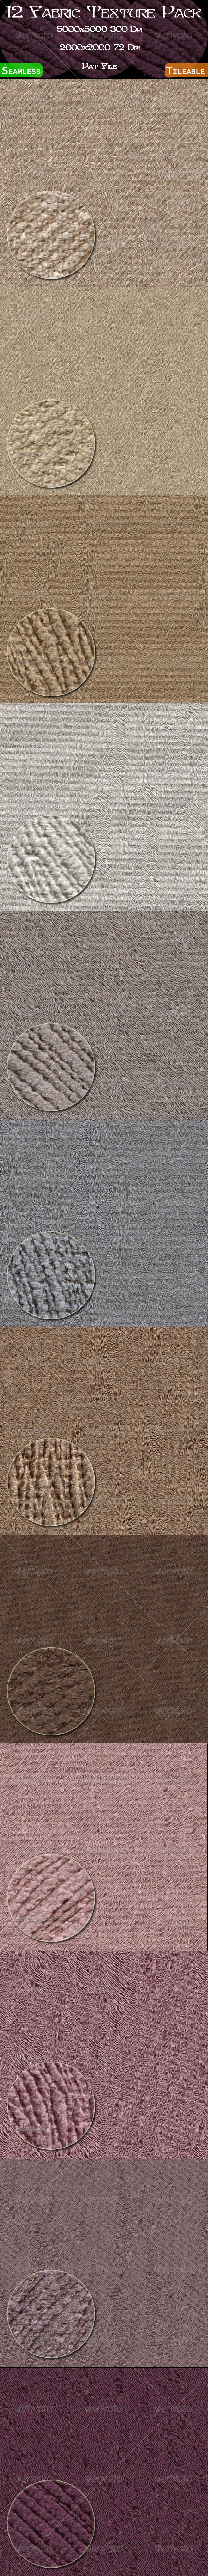 12 Fabric Texture Pack - Fabric Textures